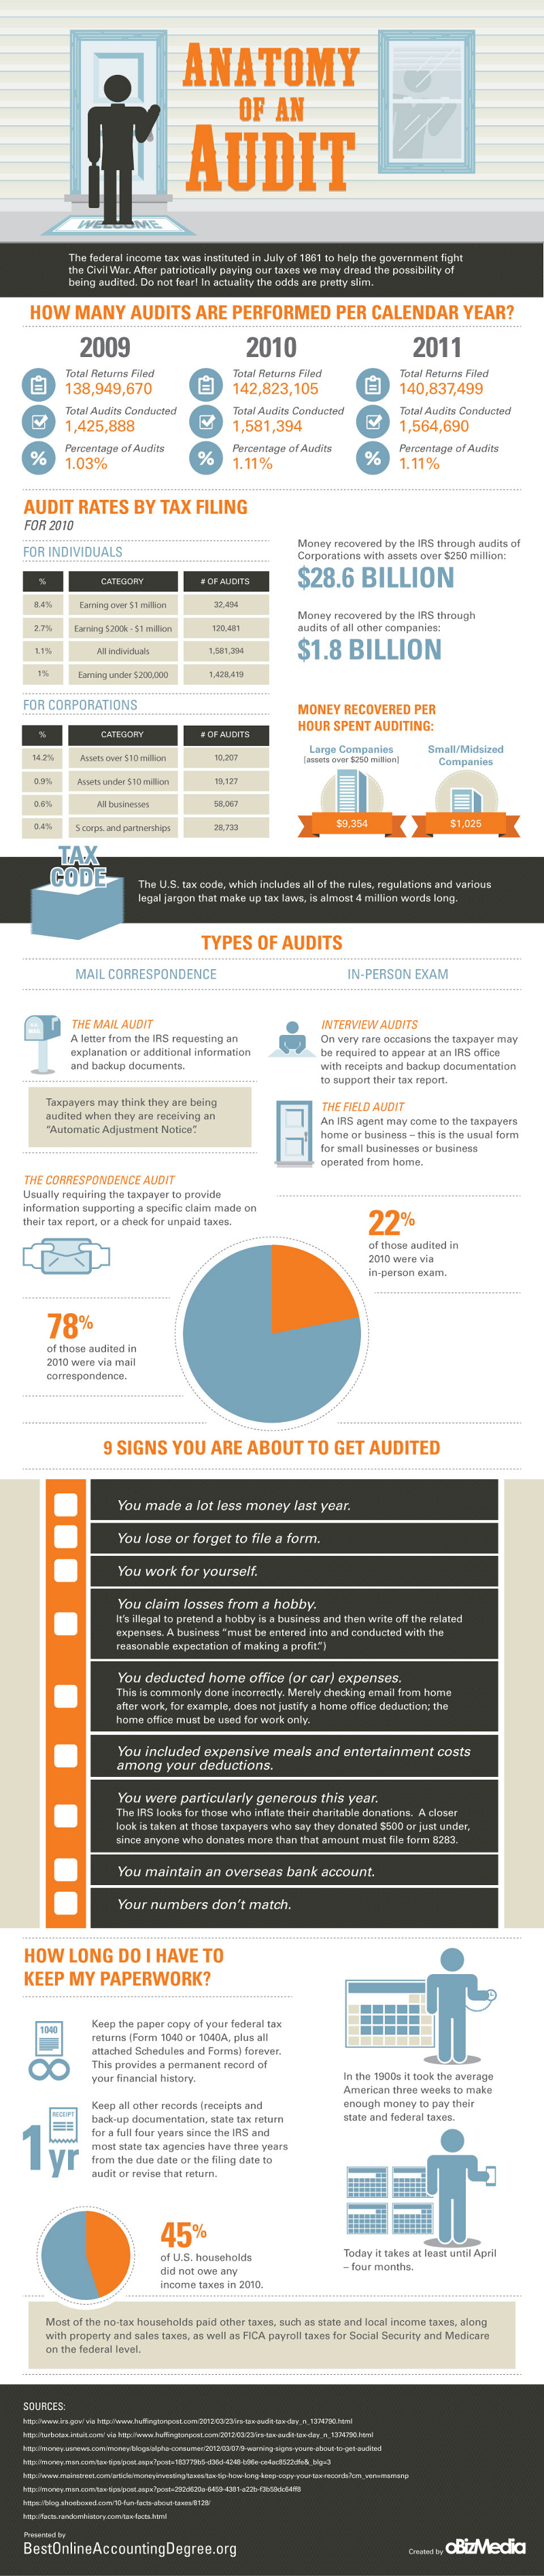 Anatomy of an Audit